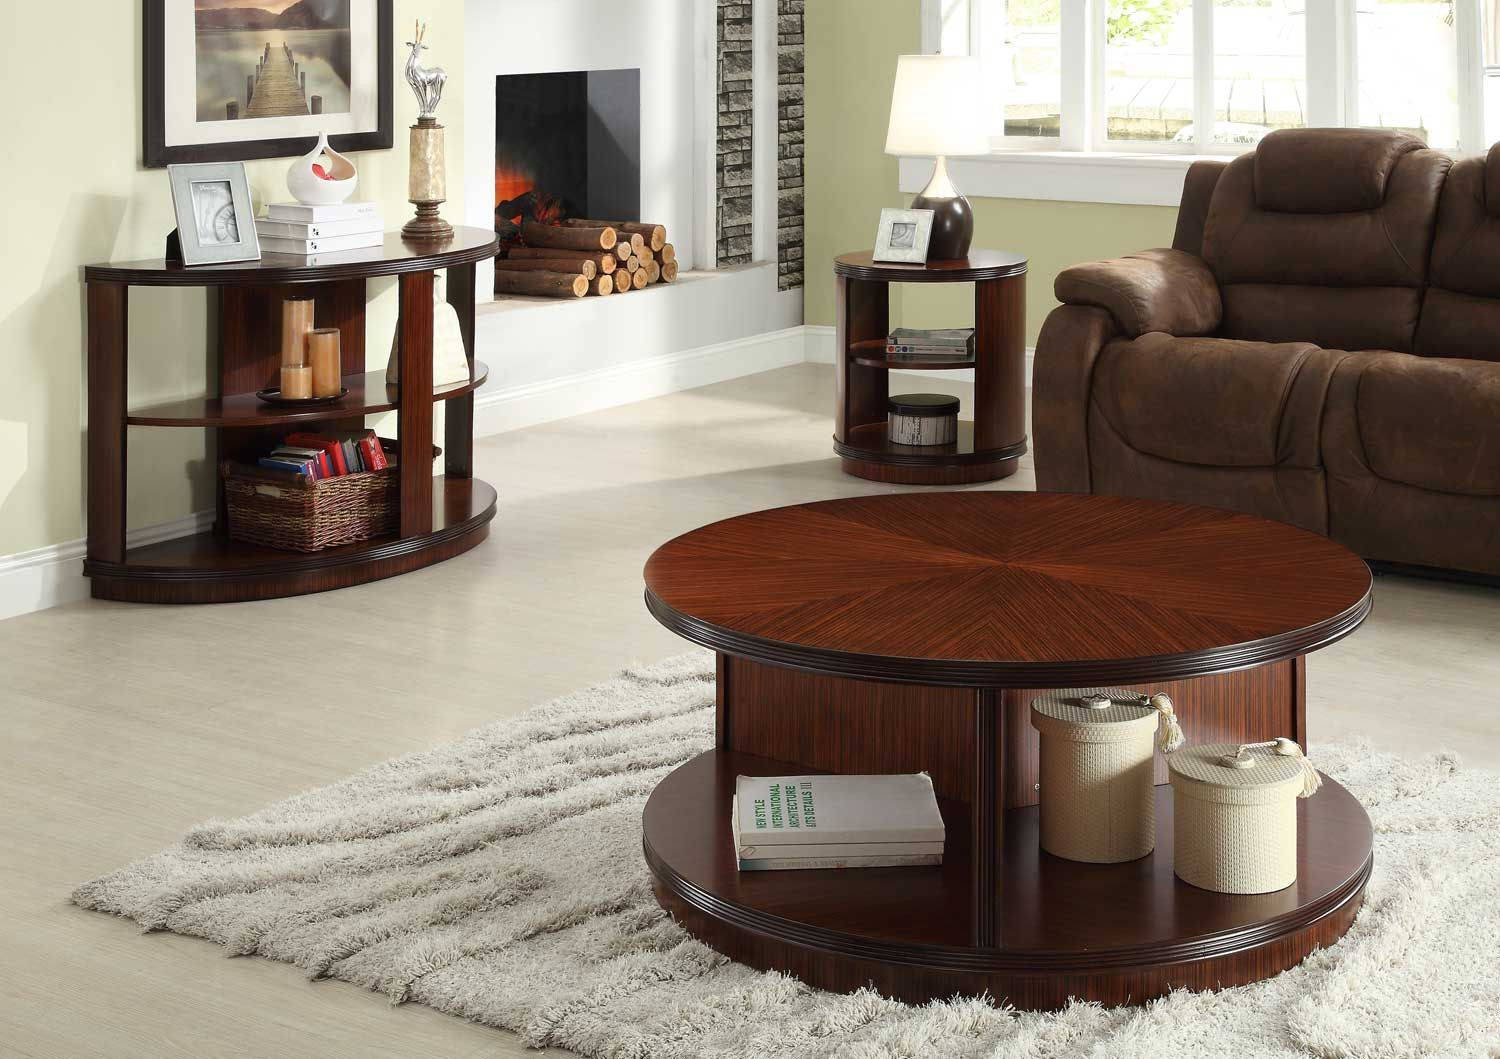 Homelegance Orlin Round Cocktail Table Set Coffee Table With Shelf Wood Sofa Table Home Coffee Tables [ 1059 x 1500 Pixel ]